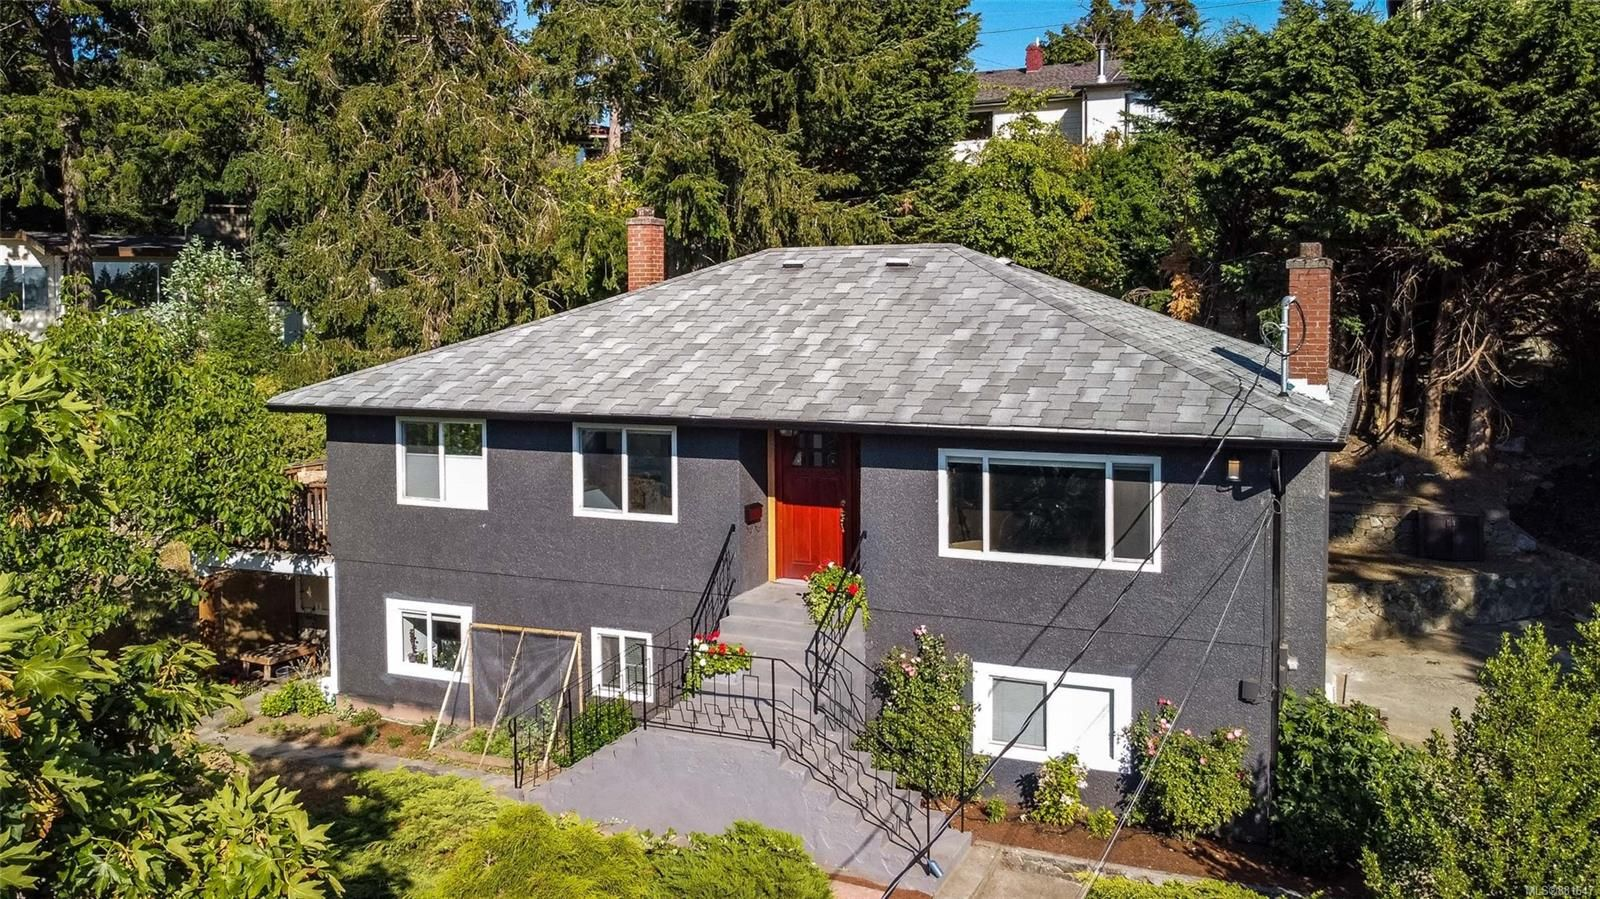 Main Photo: 4087 Carey Rd in : SW Glanford House for sale (Saanich West)  : MLS®# 881647